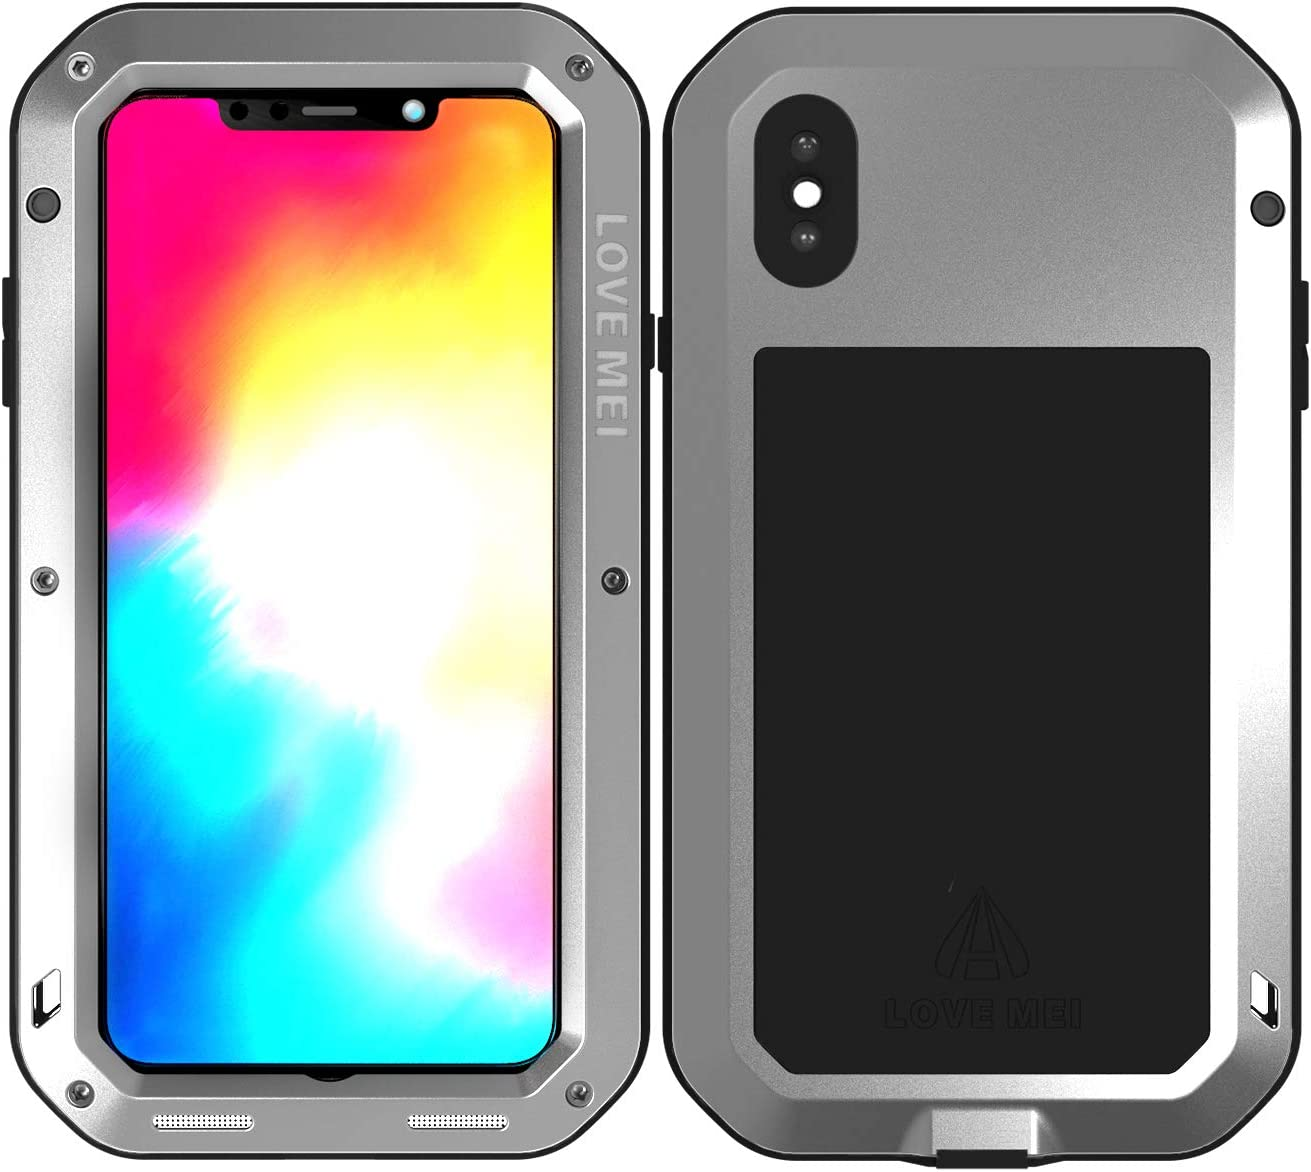 Funda iPhone Xs Max Gel Silicona Transparente Con Tapon Antipolvo